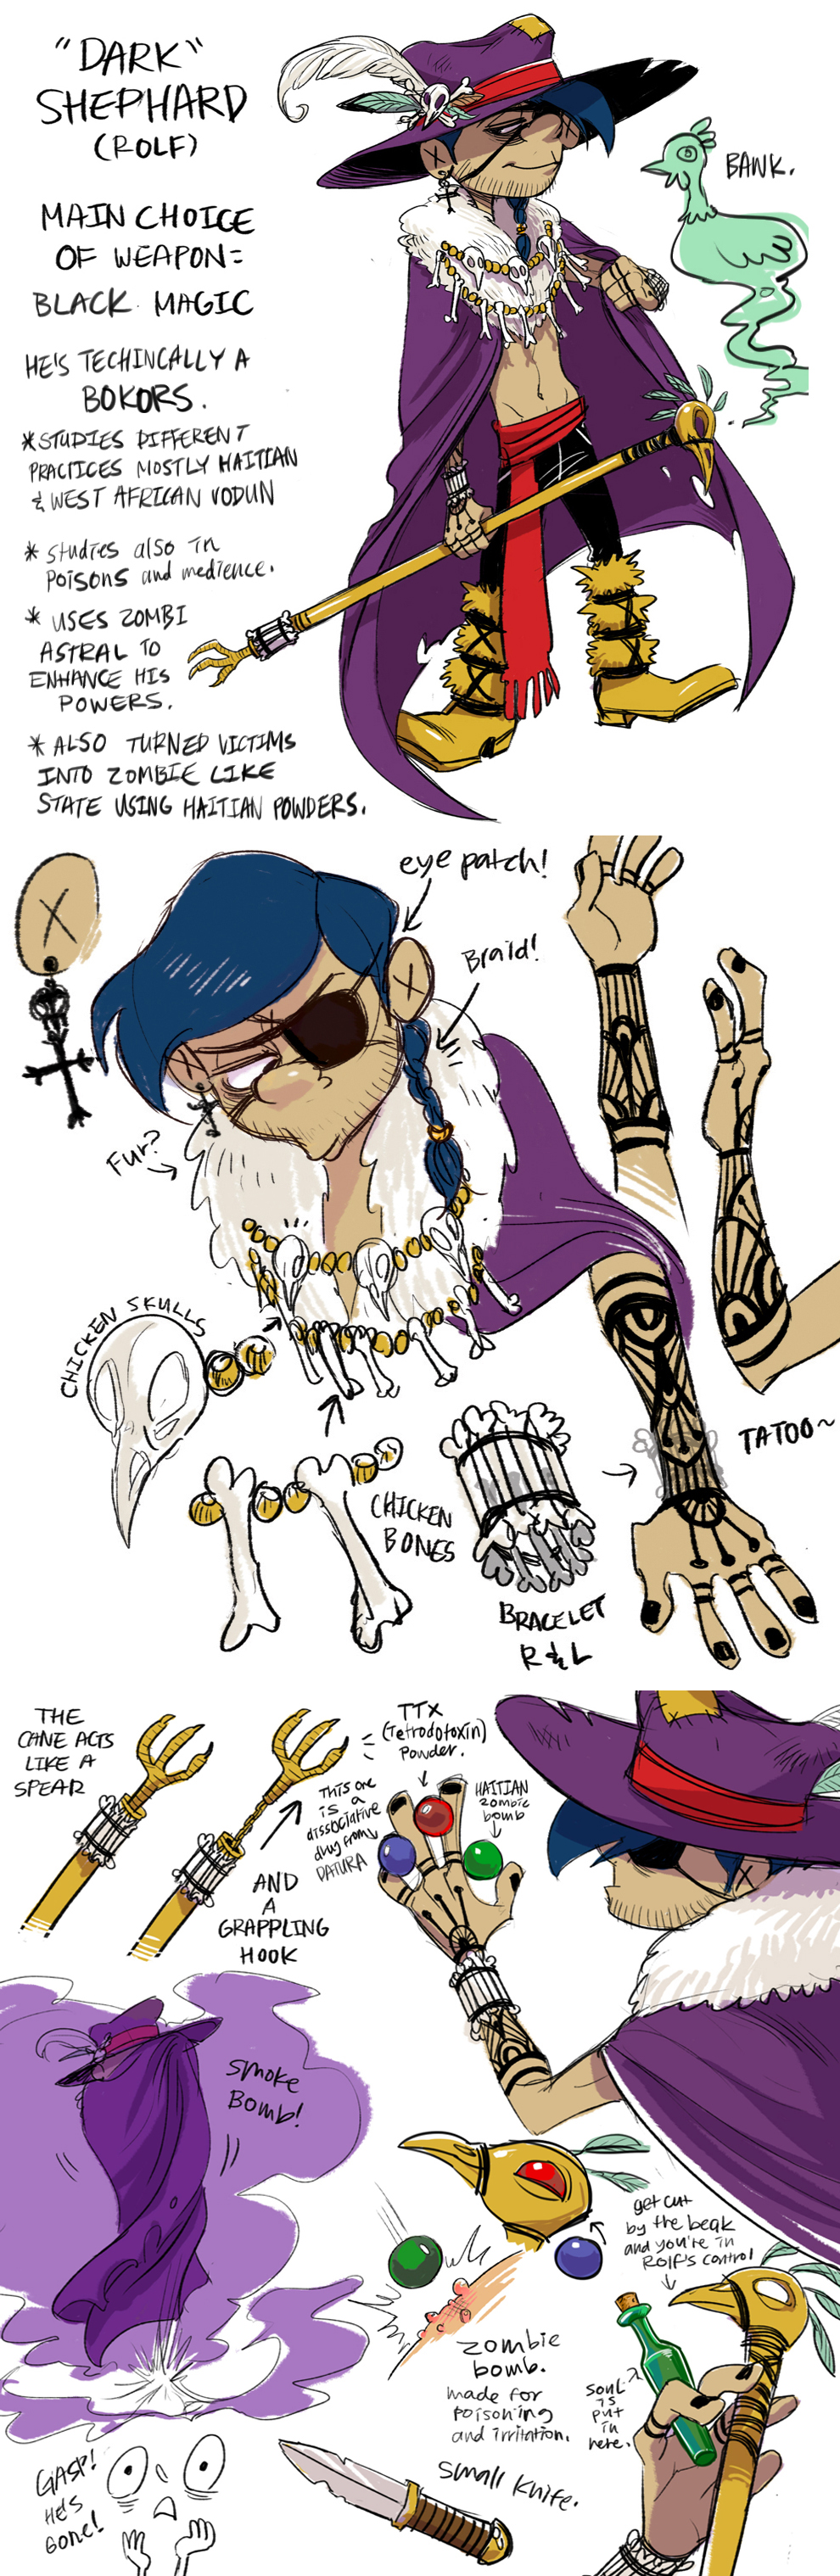 Rolf Official Character Design Post By C2ndy2c1d Ed Edd N Eddy